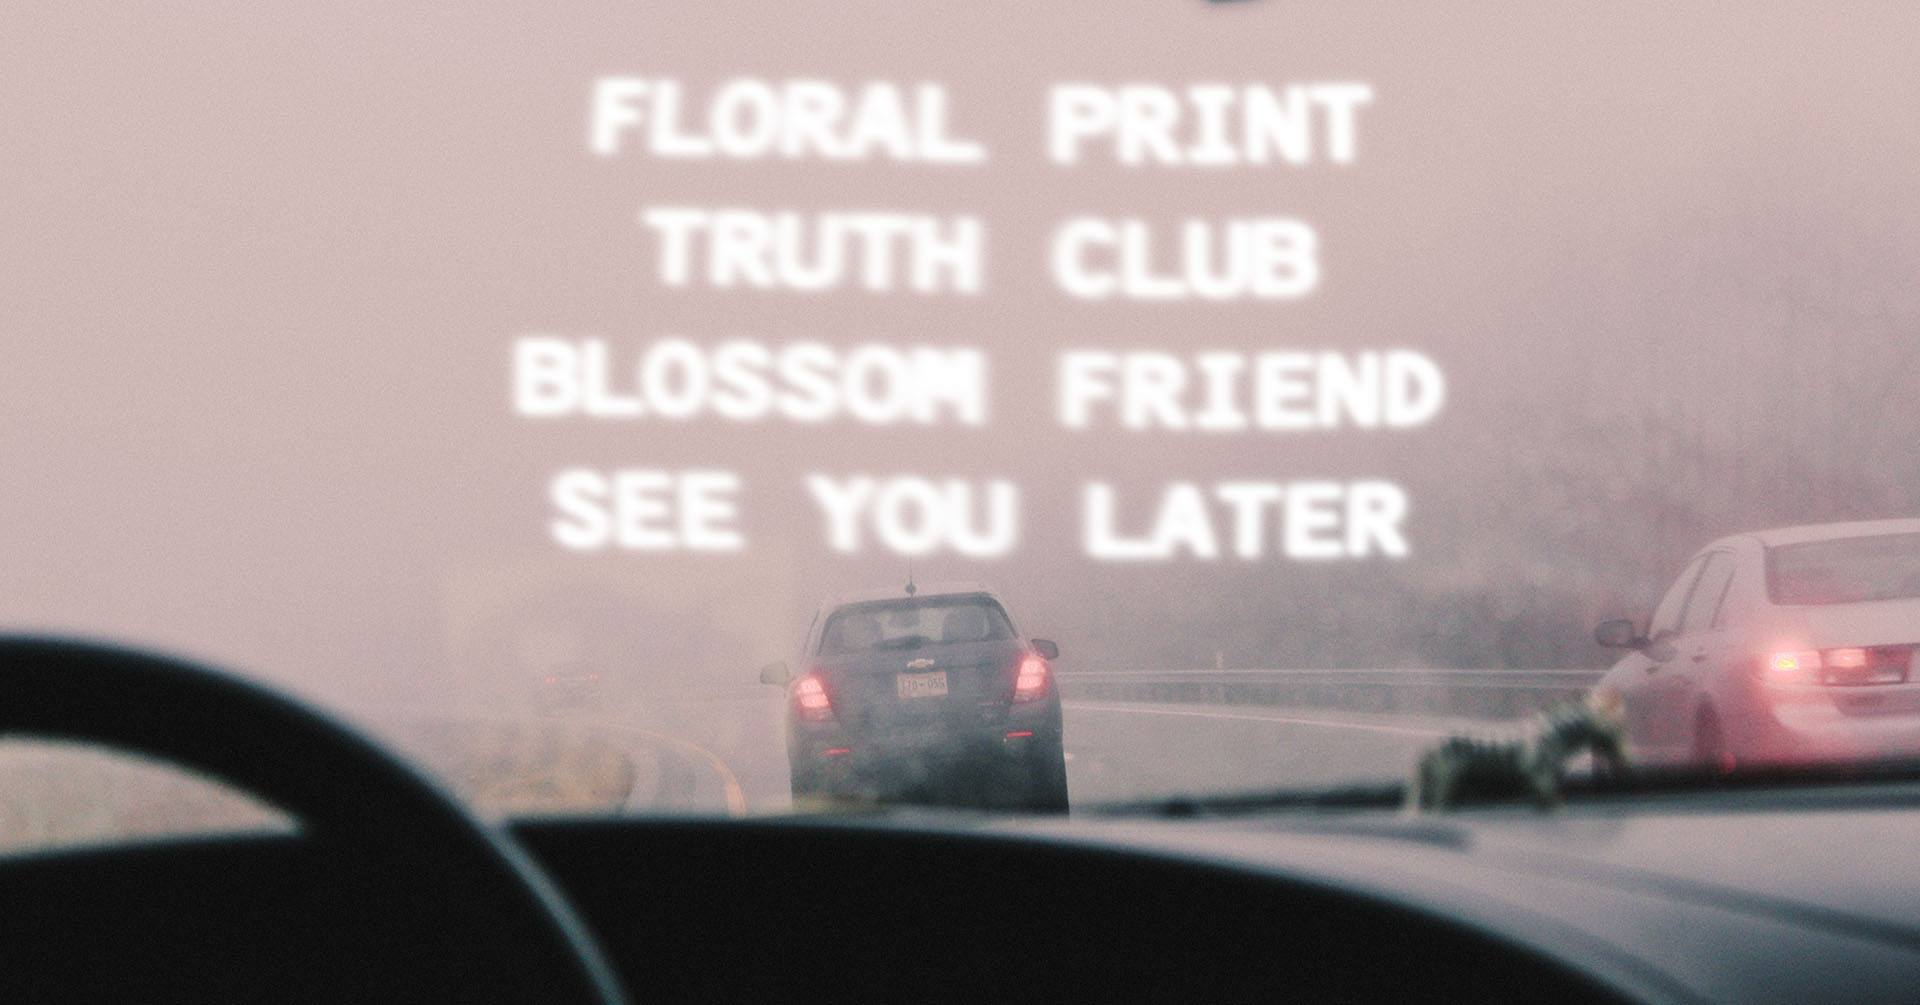 Past Shows From Scratch Off Road Trailer Akaa Reason To Buy A Welder Page 2 Floral Print Truth Club Blossom Friend See You Later